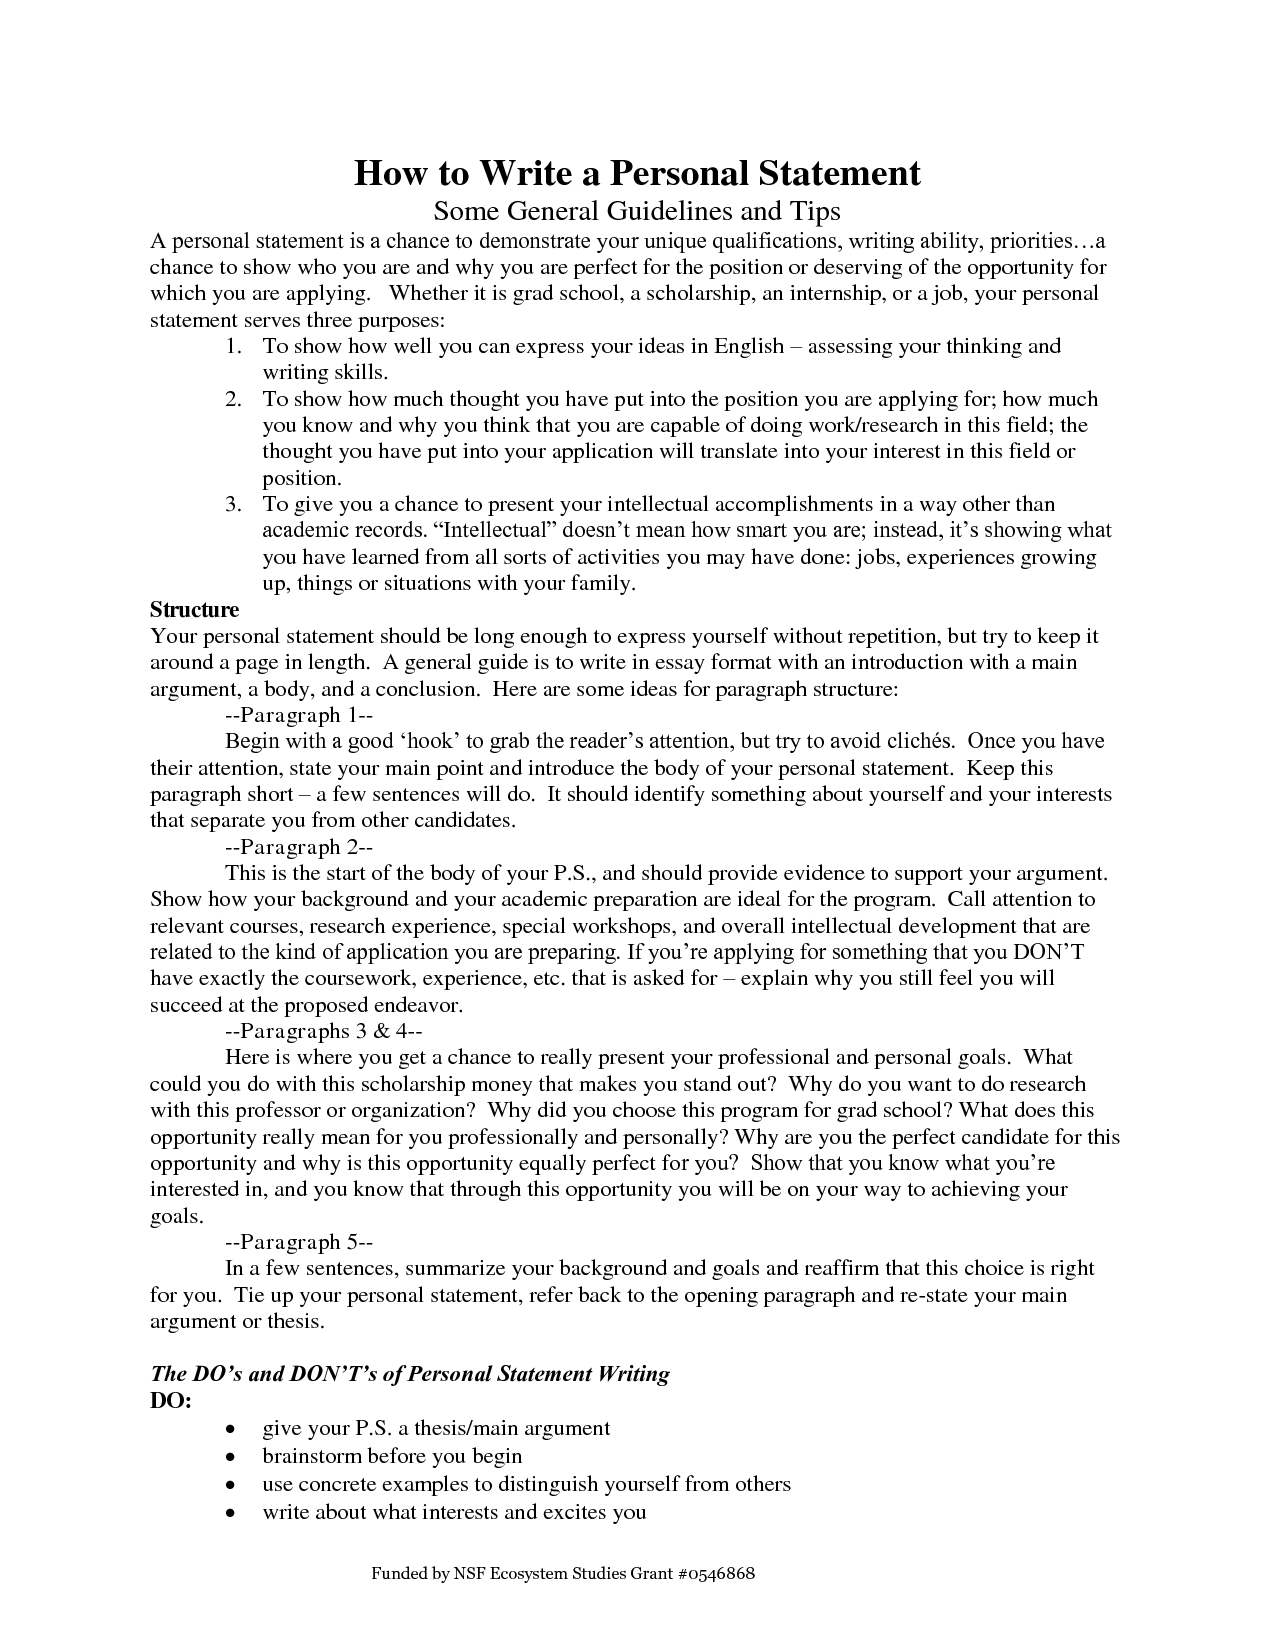 how to write a personal statement essay university